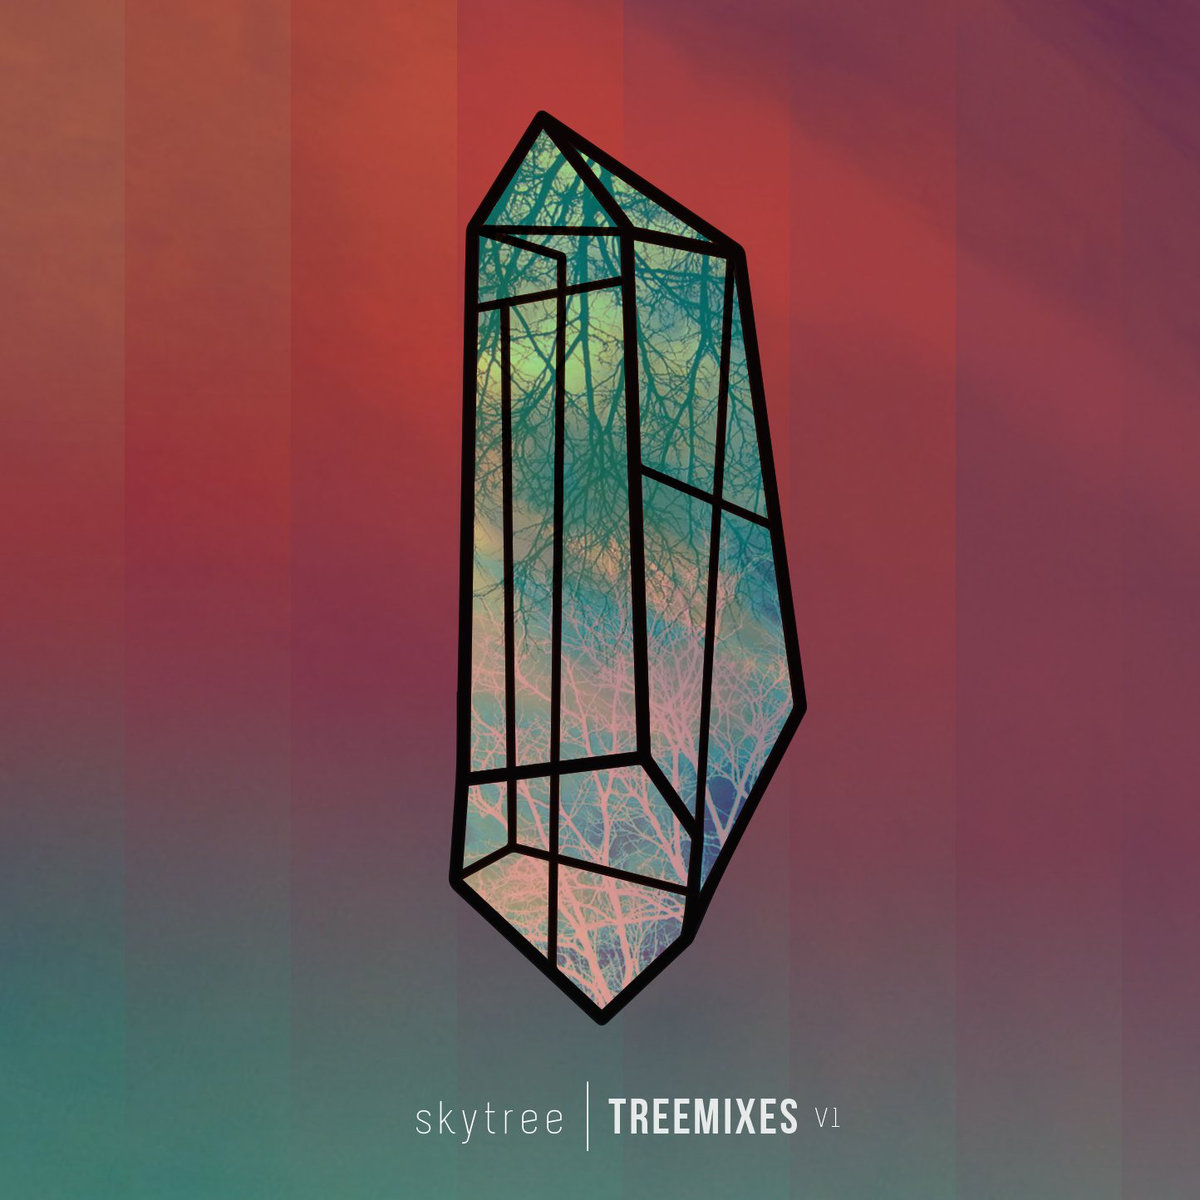 Skytree - To Illumination (Profresher remix) @ 'Treemixes V1' album (Austin)